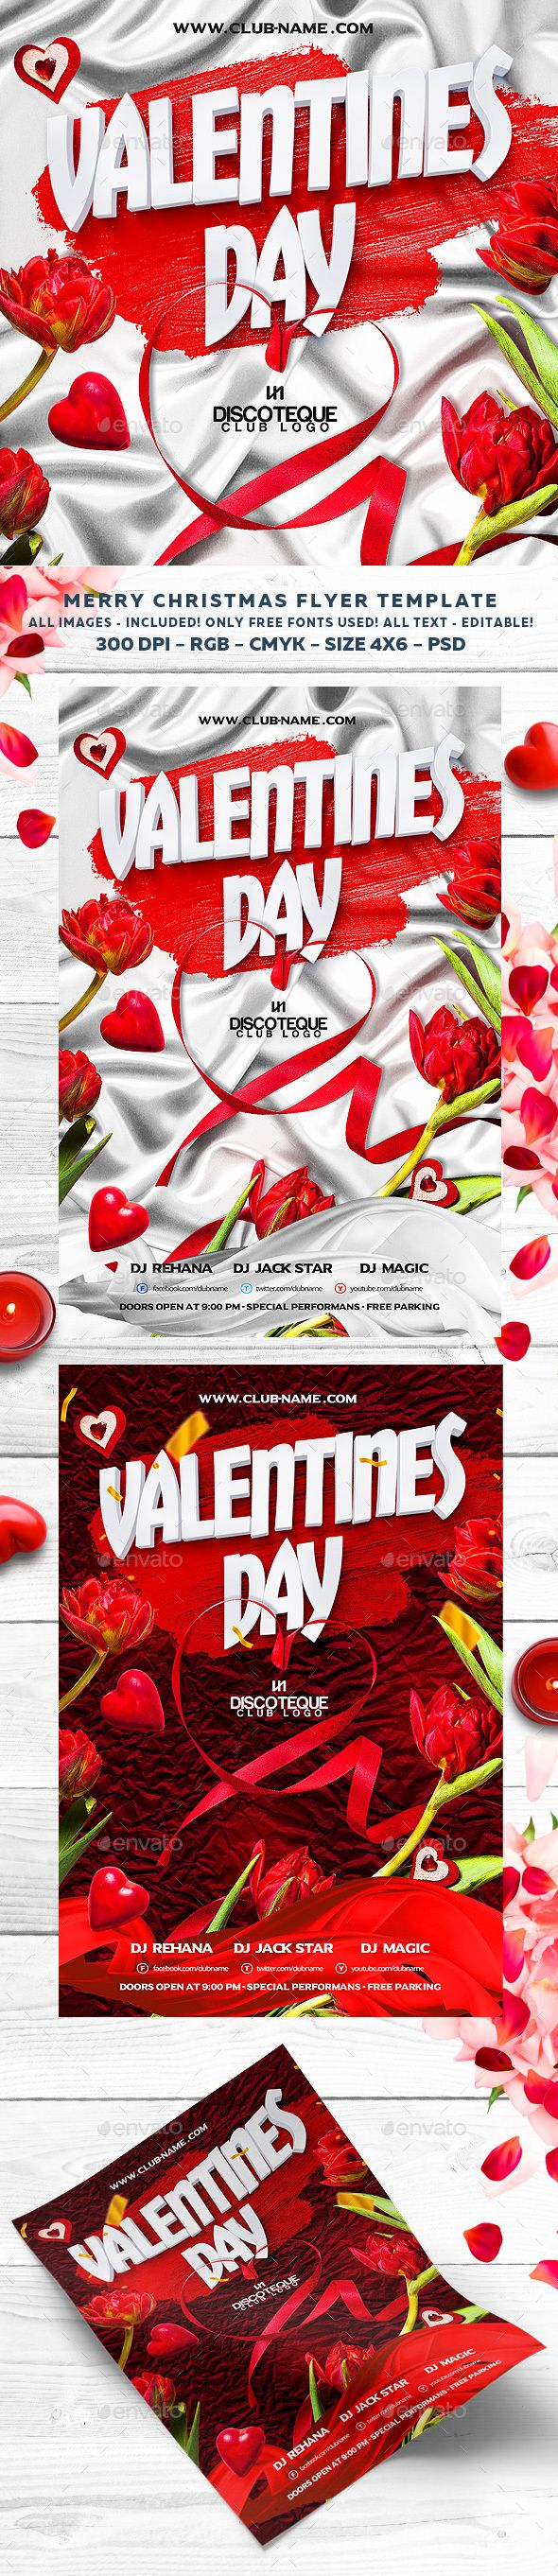 Valentines Flyer Pinterest Club Parties Flyer Template And